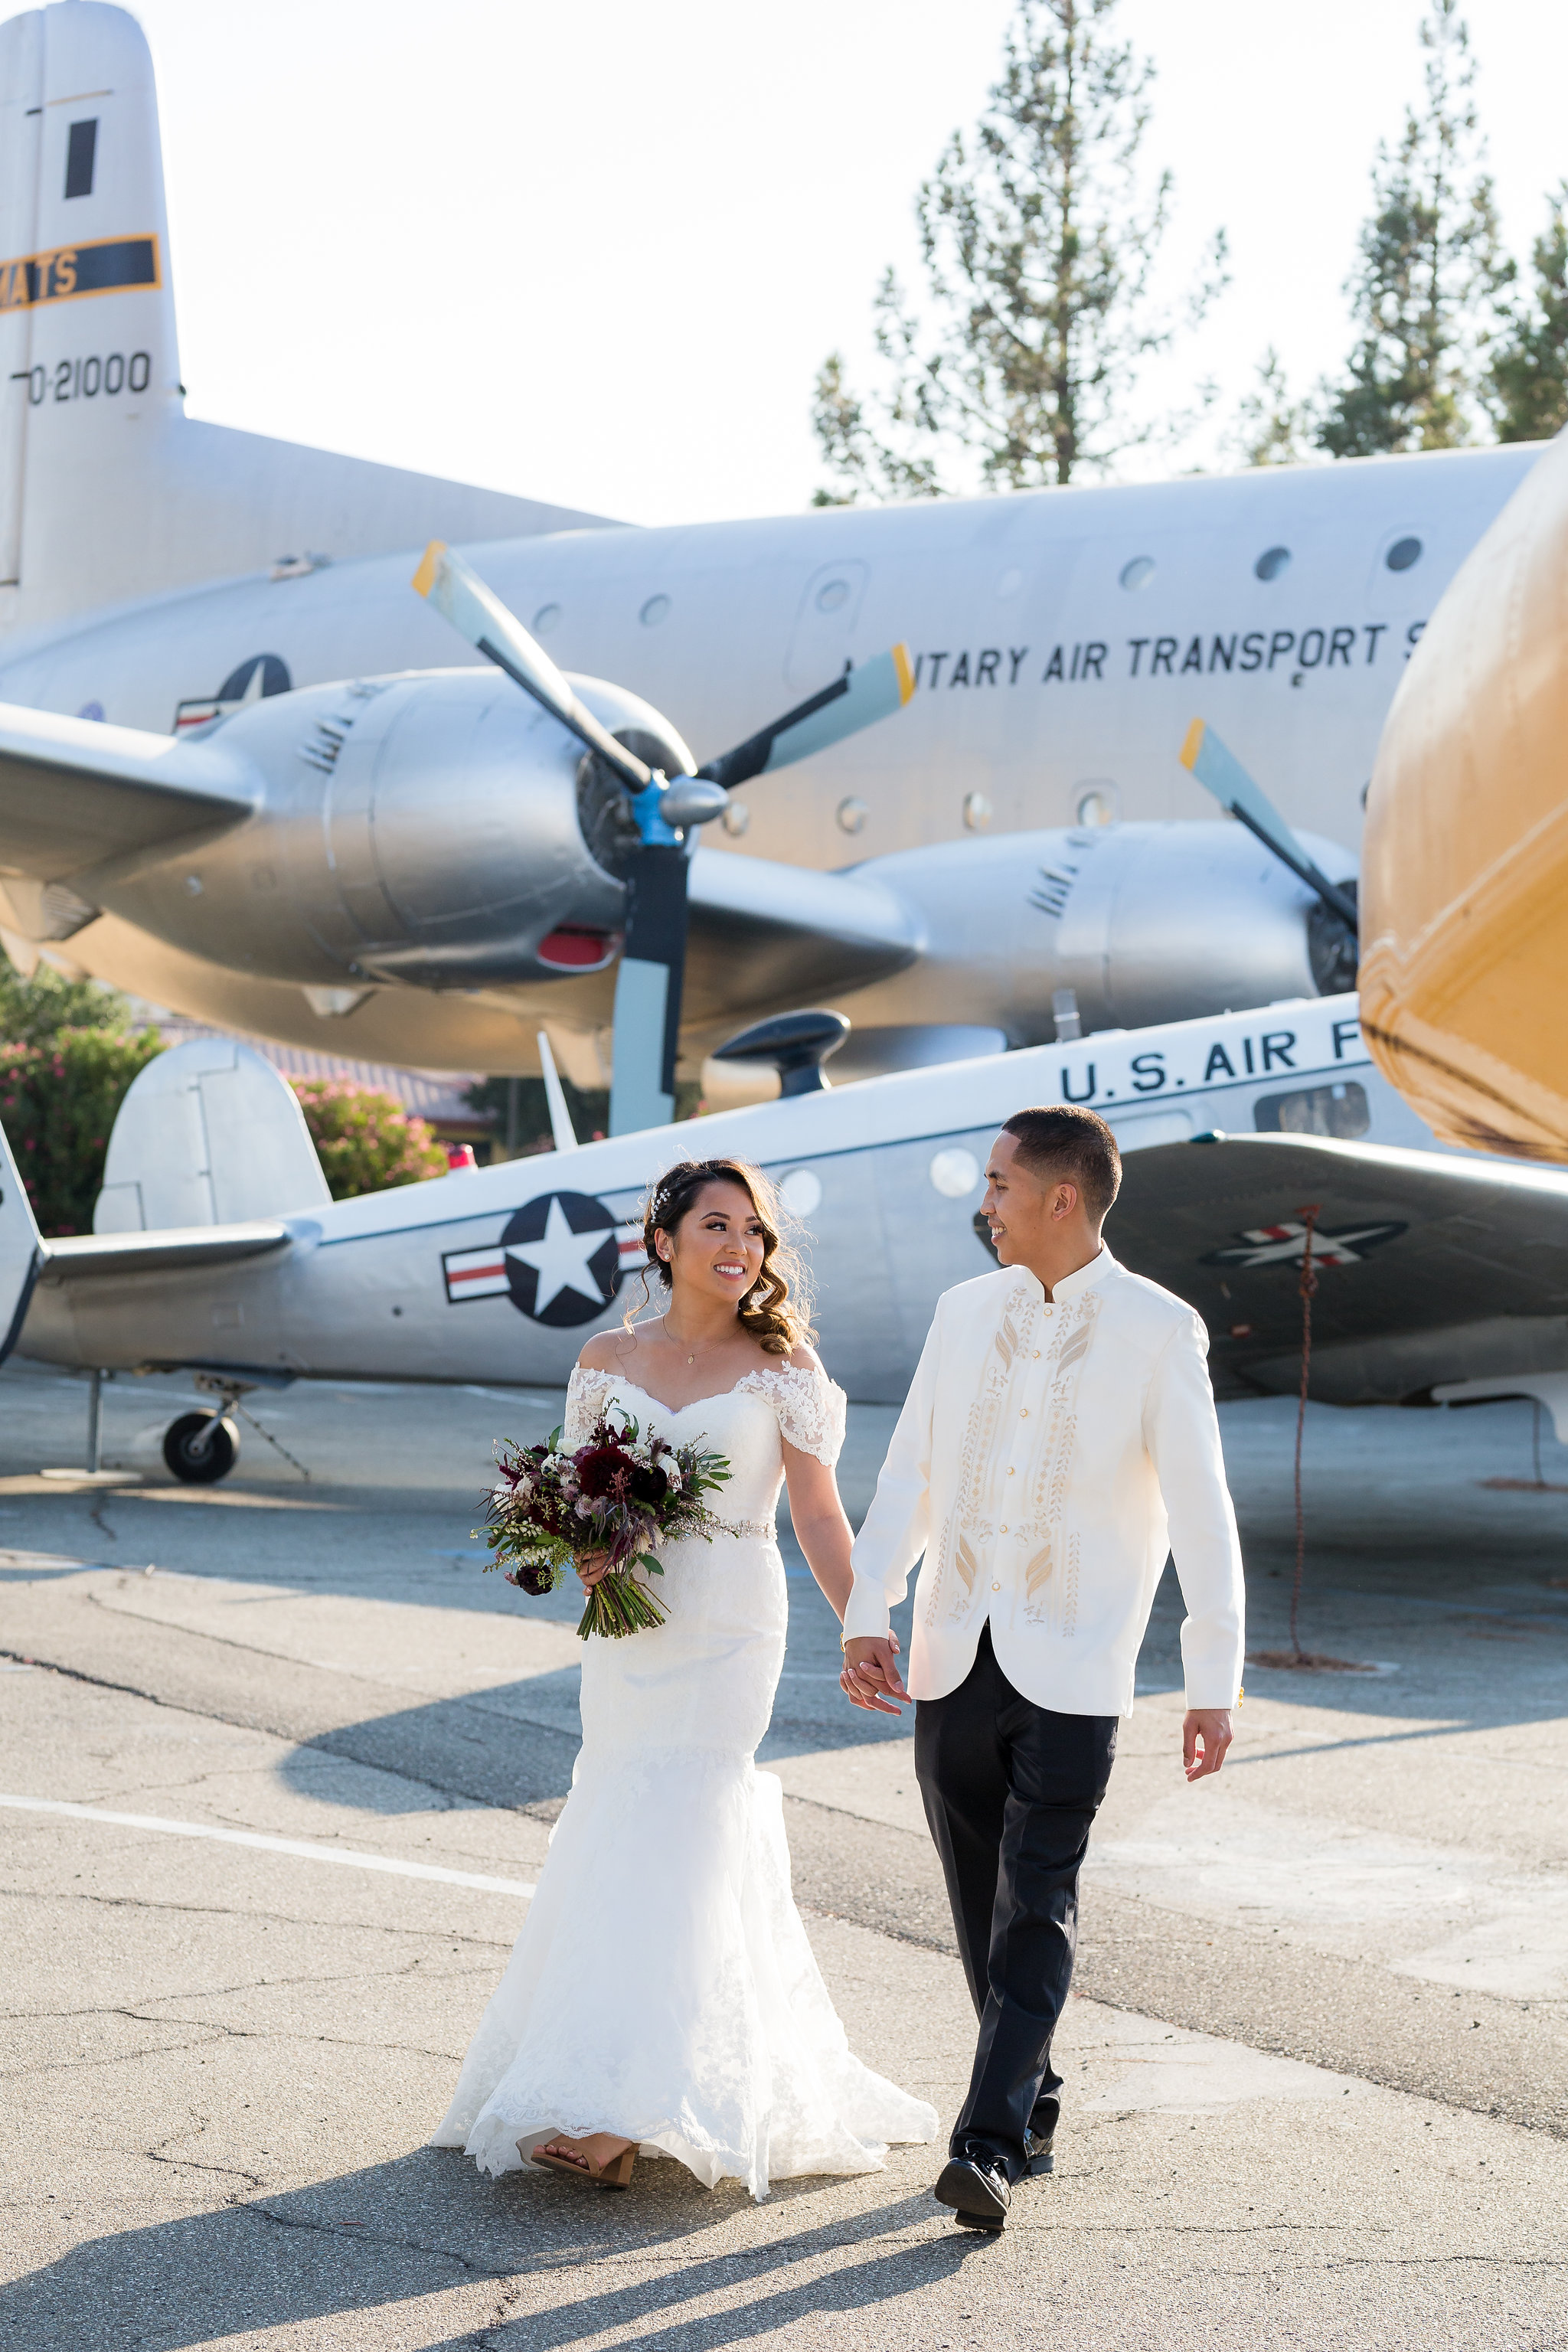 travis air force base wedding-16.jpg